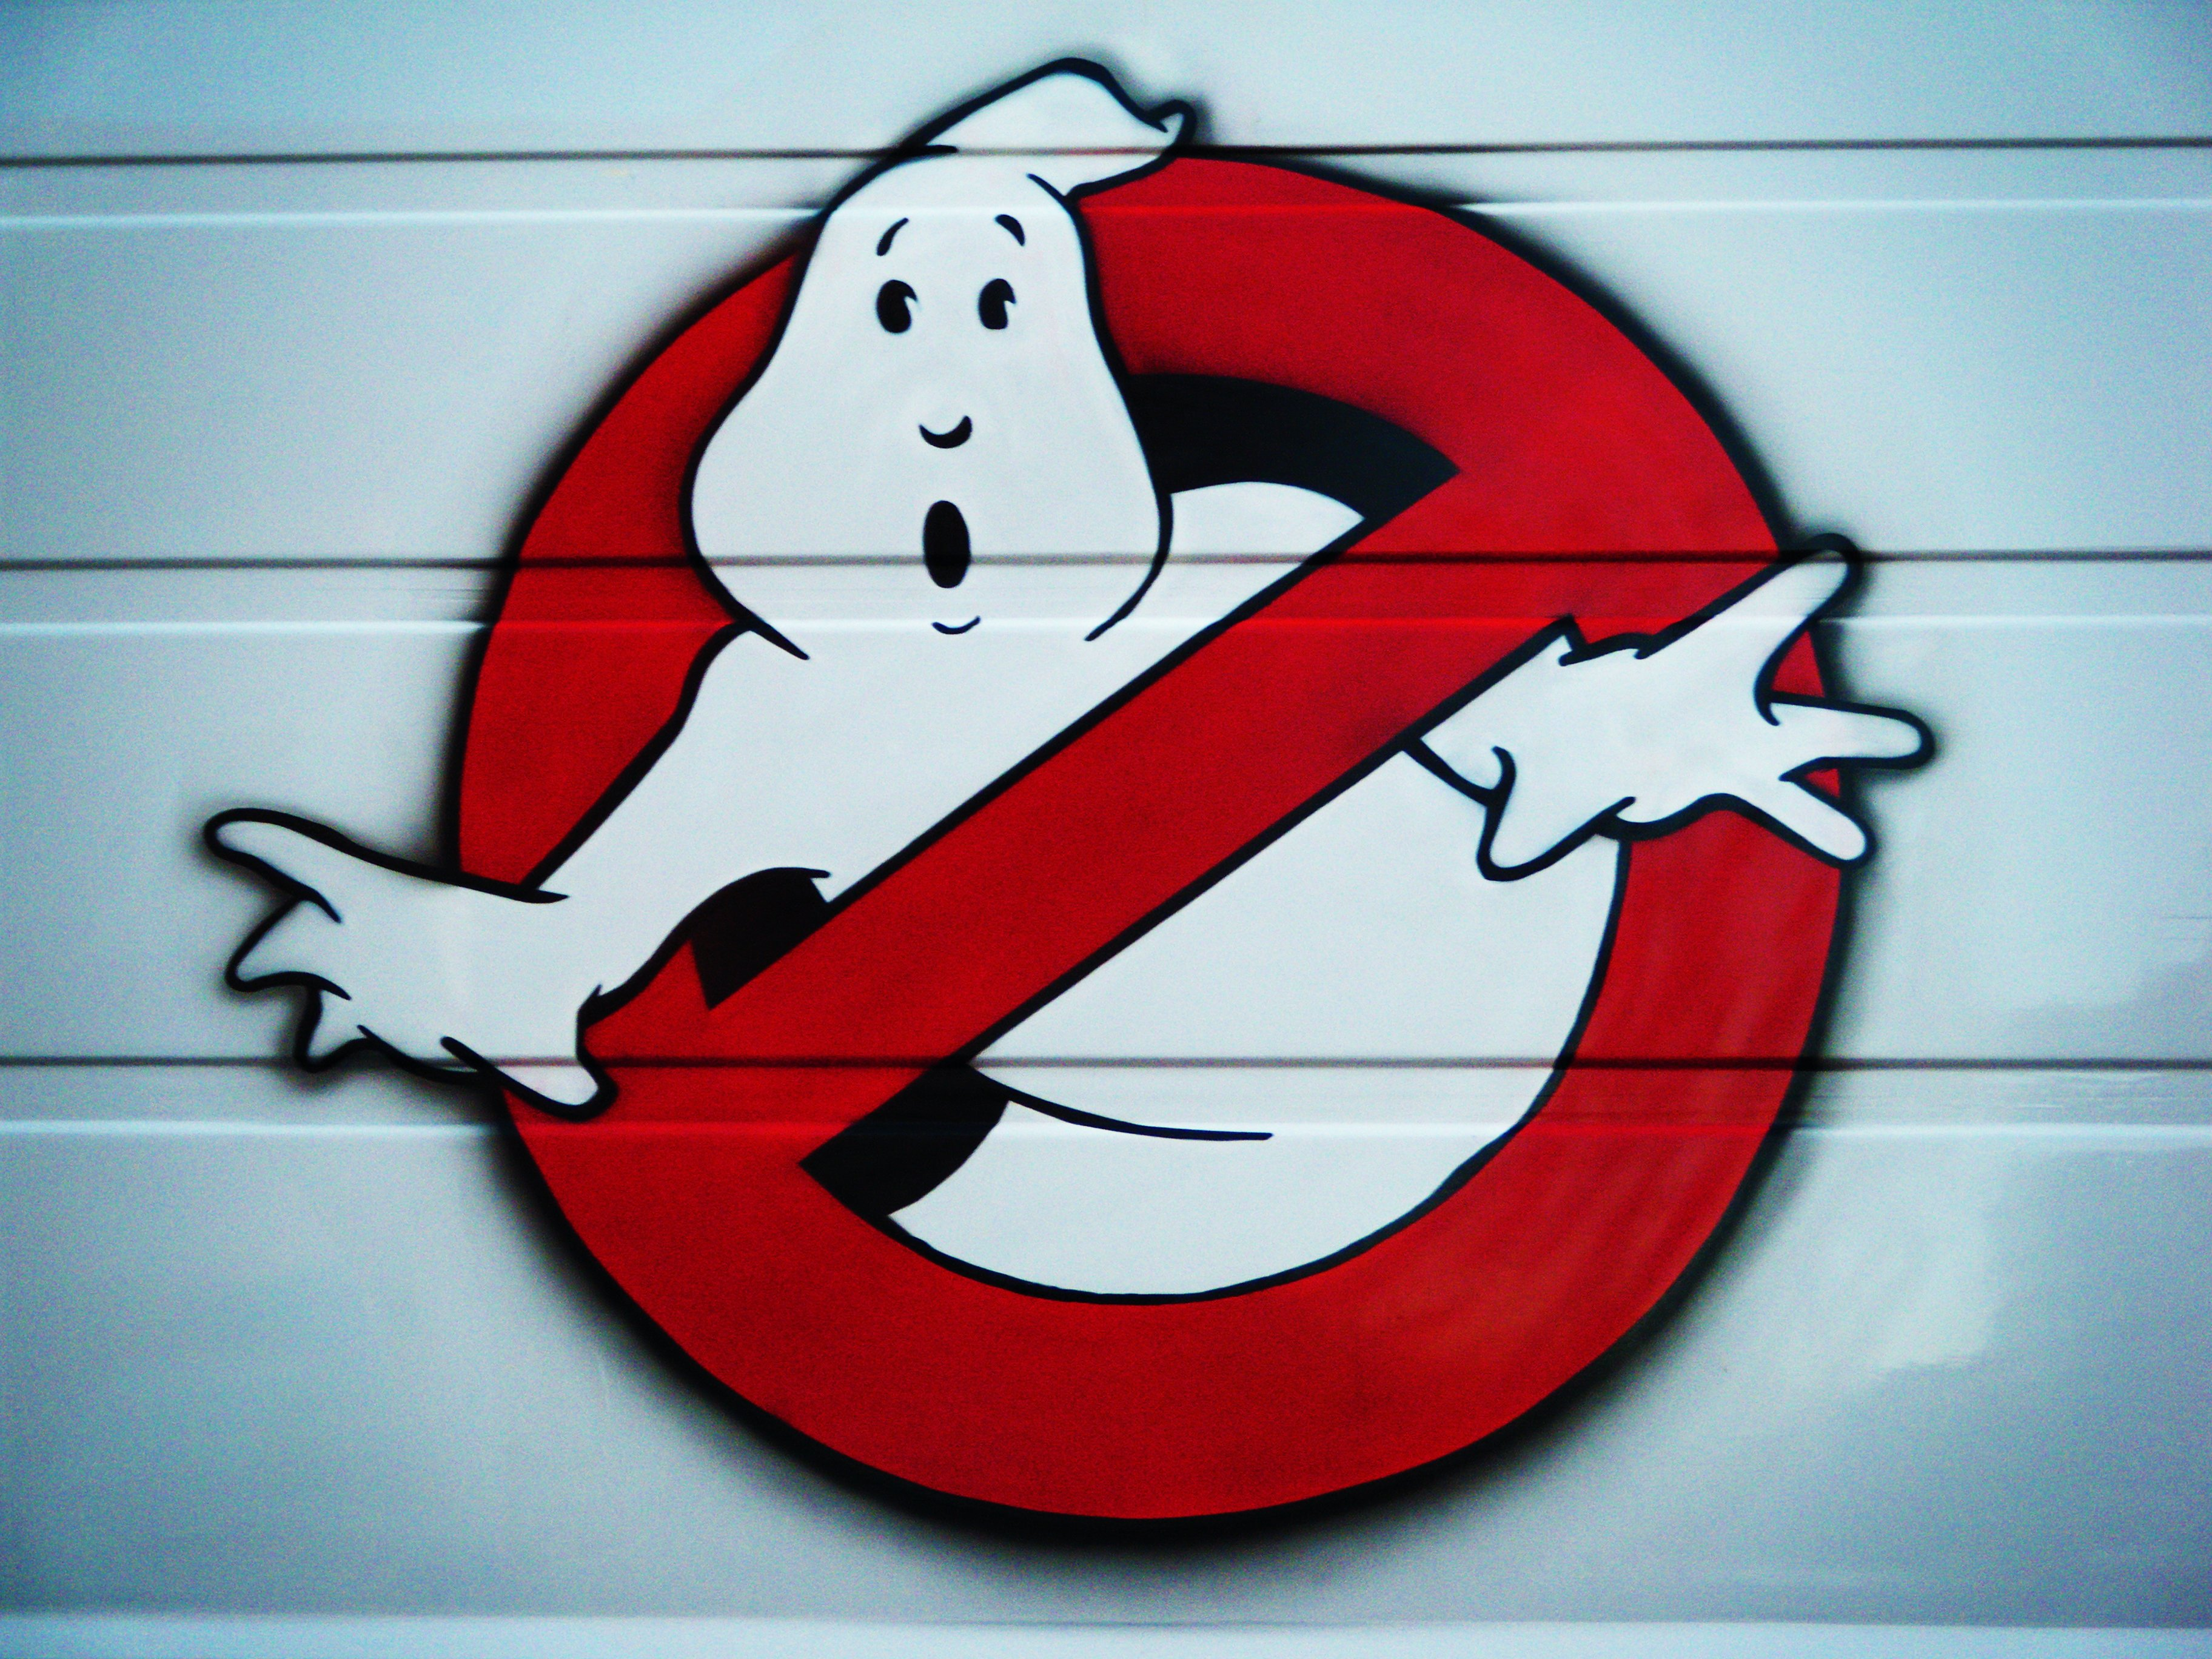 ghostbusters wallpapers | WallpaperUP